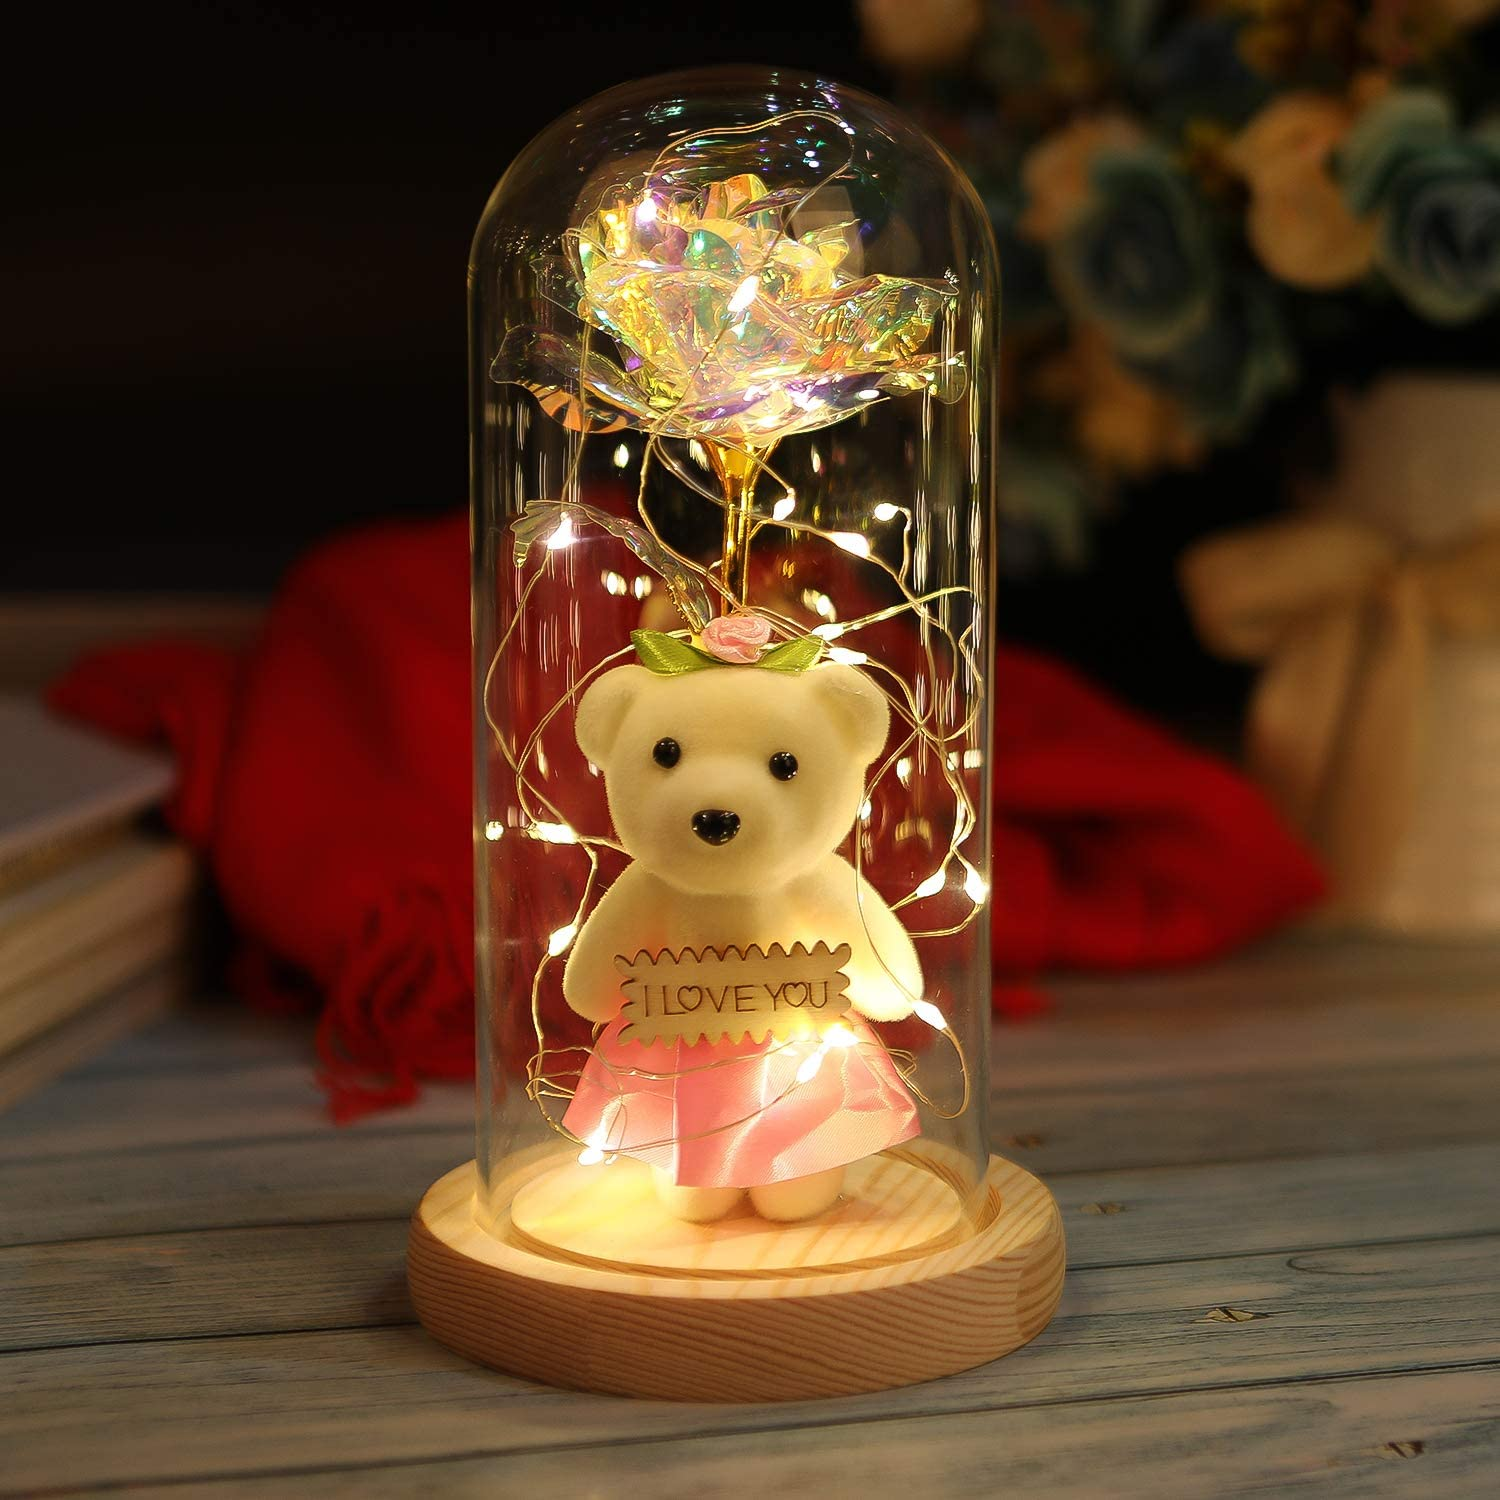 LY EMMET Colorful Gold Foil Rose and Led Light in Glass Dome Beauty and The Beast Rose Kit for Home Décor